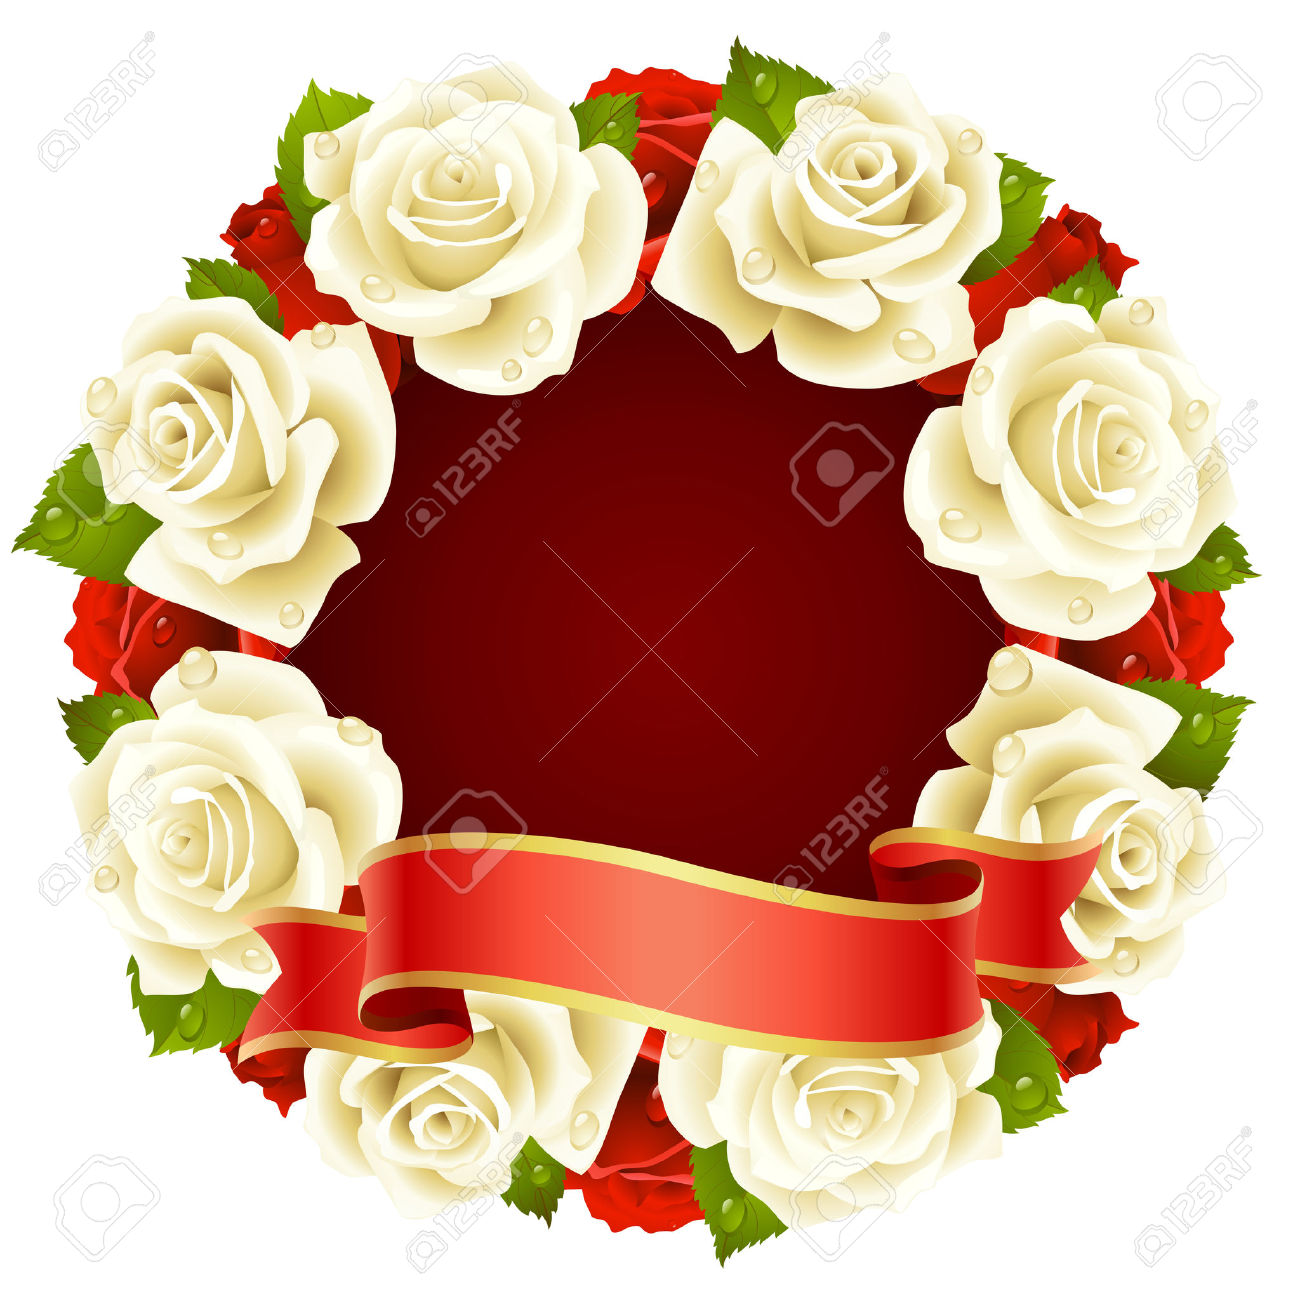 White Rose clipart real #9